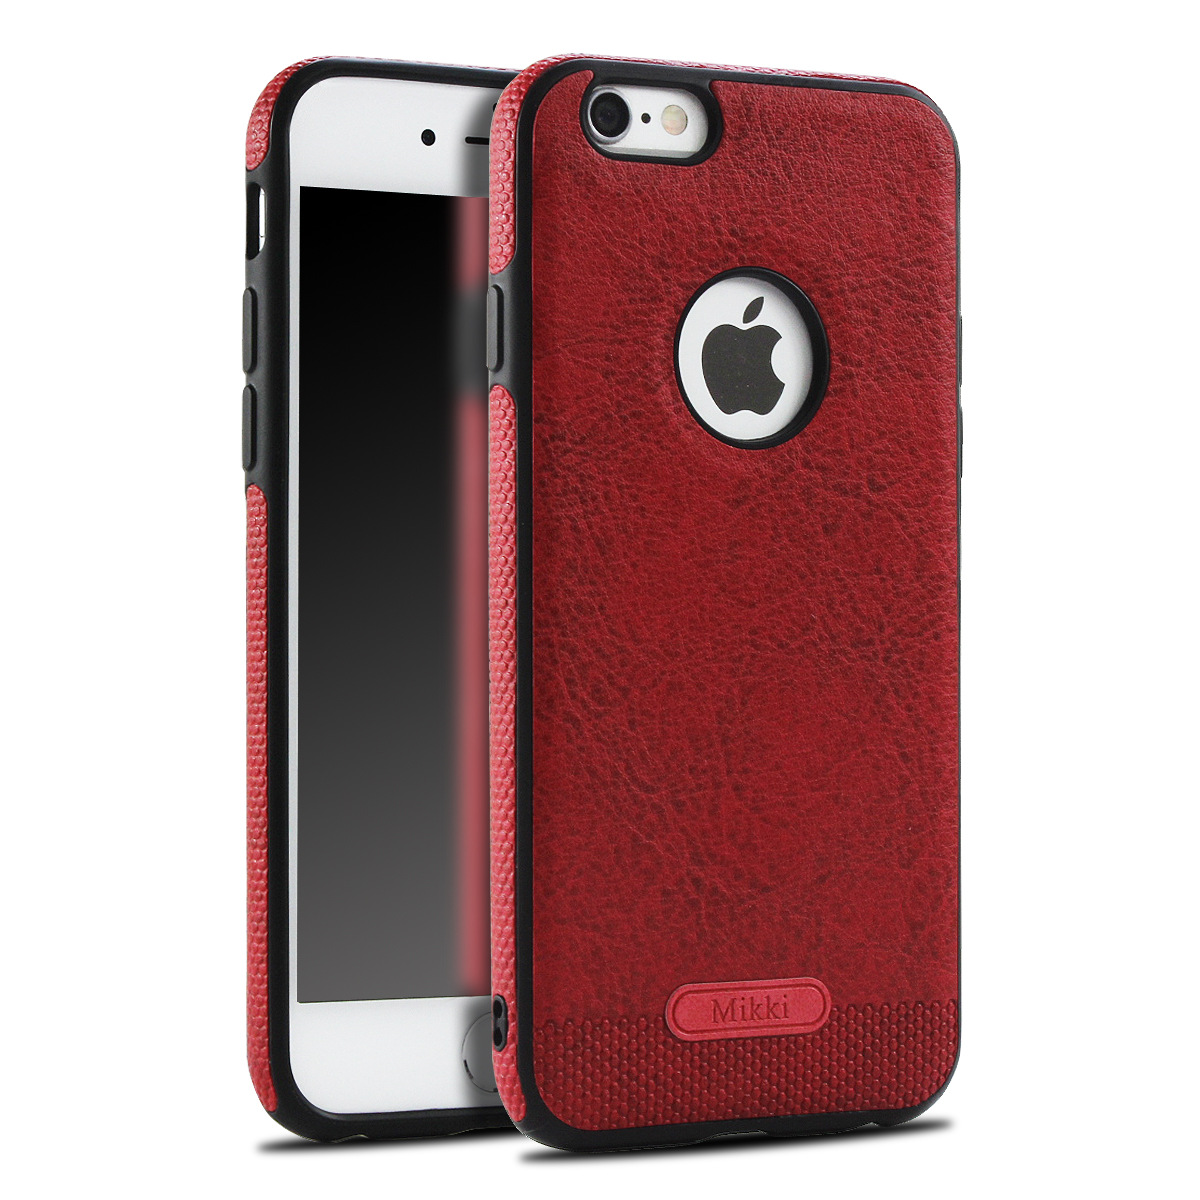 new Mikki TPU soft Phone case for Iphone models